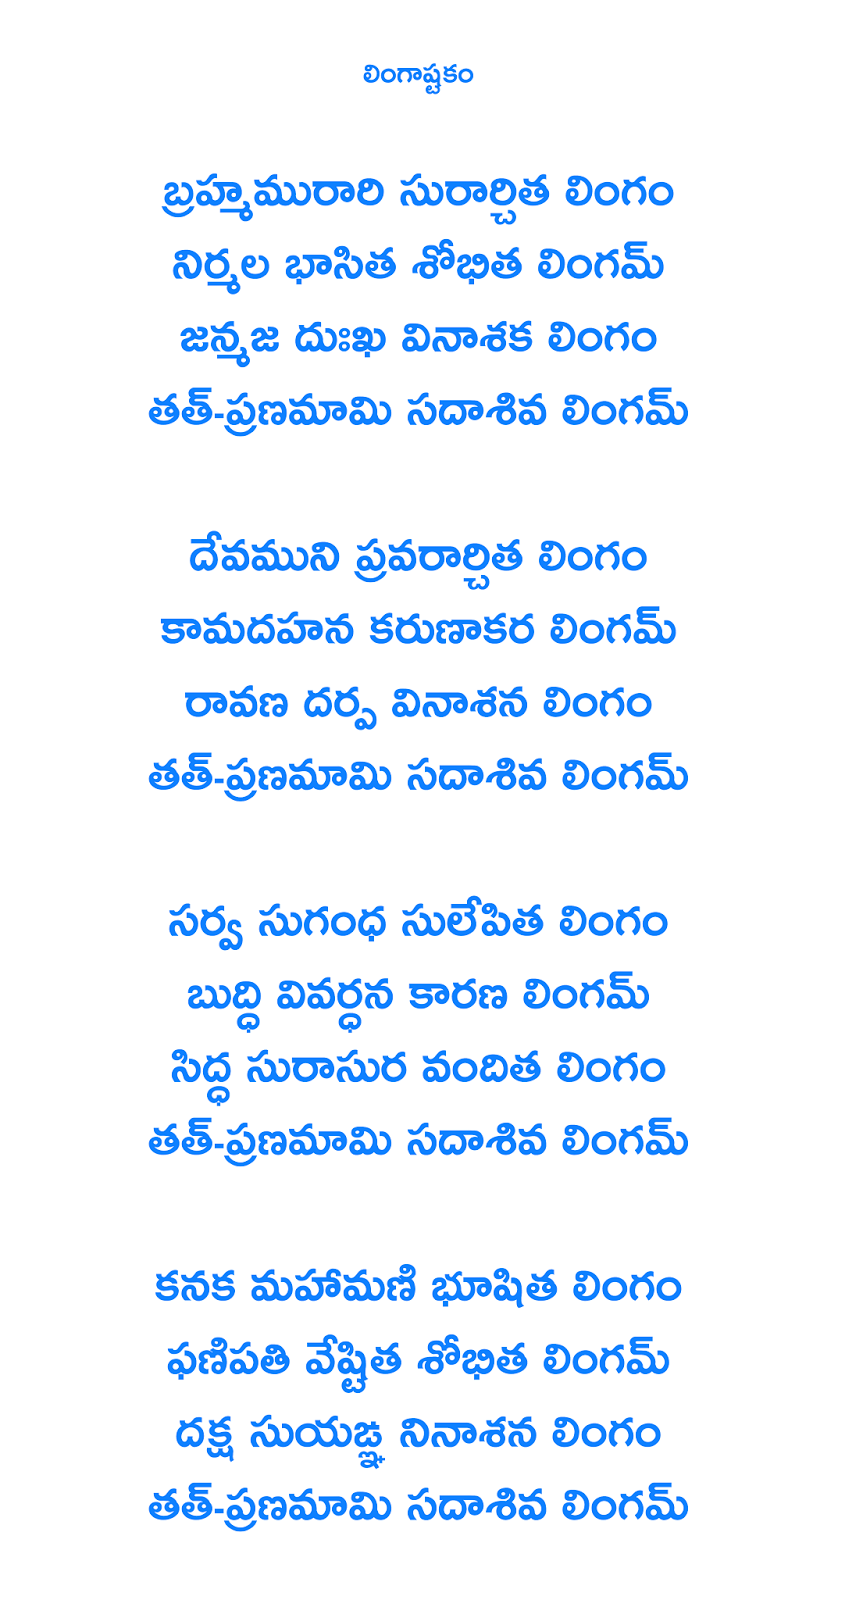 How to Type in Telugu